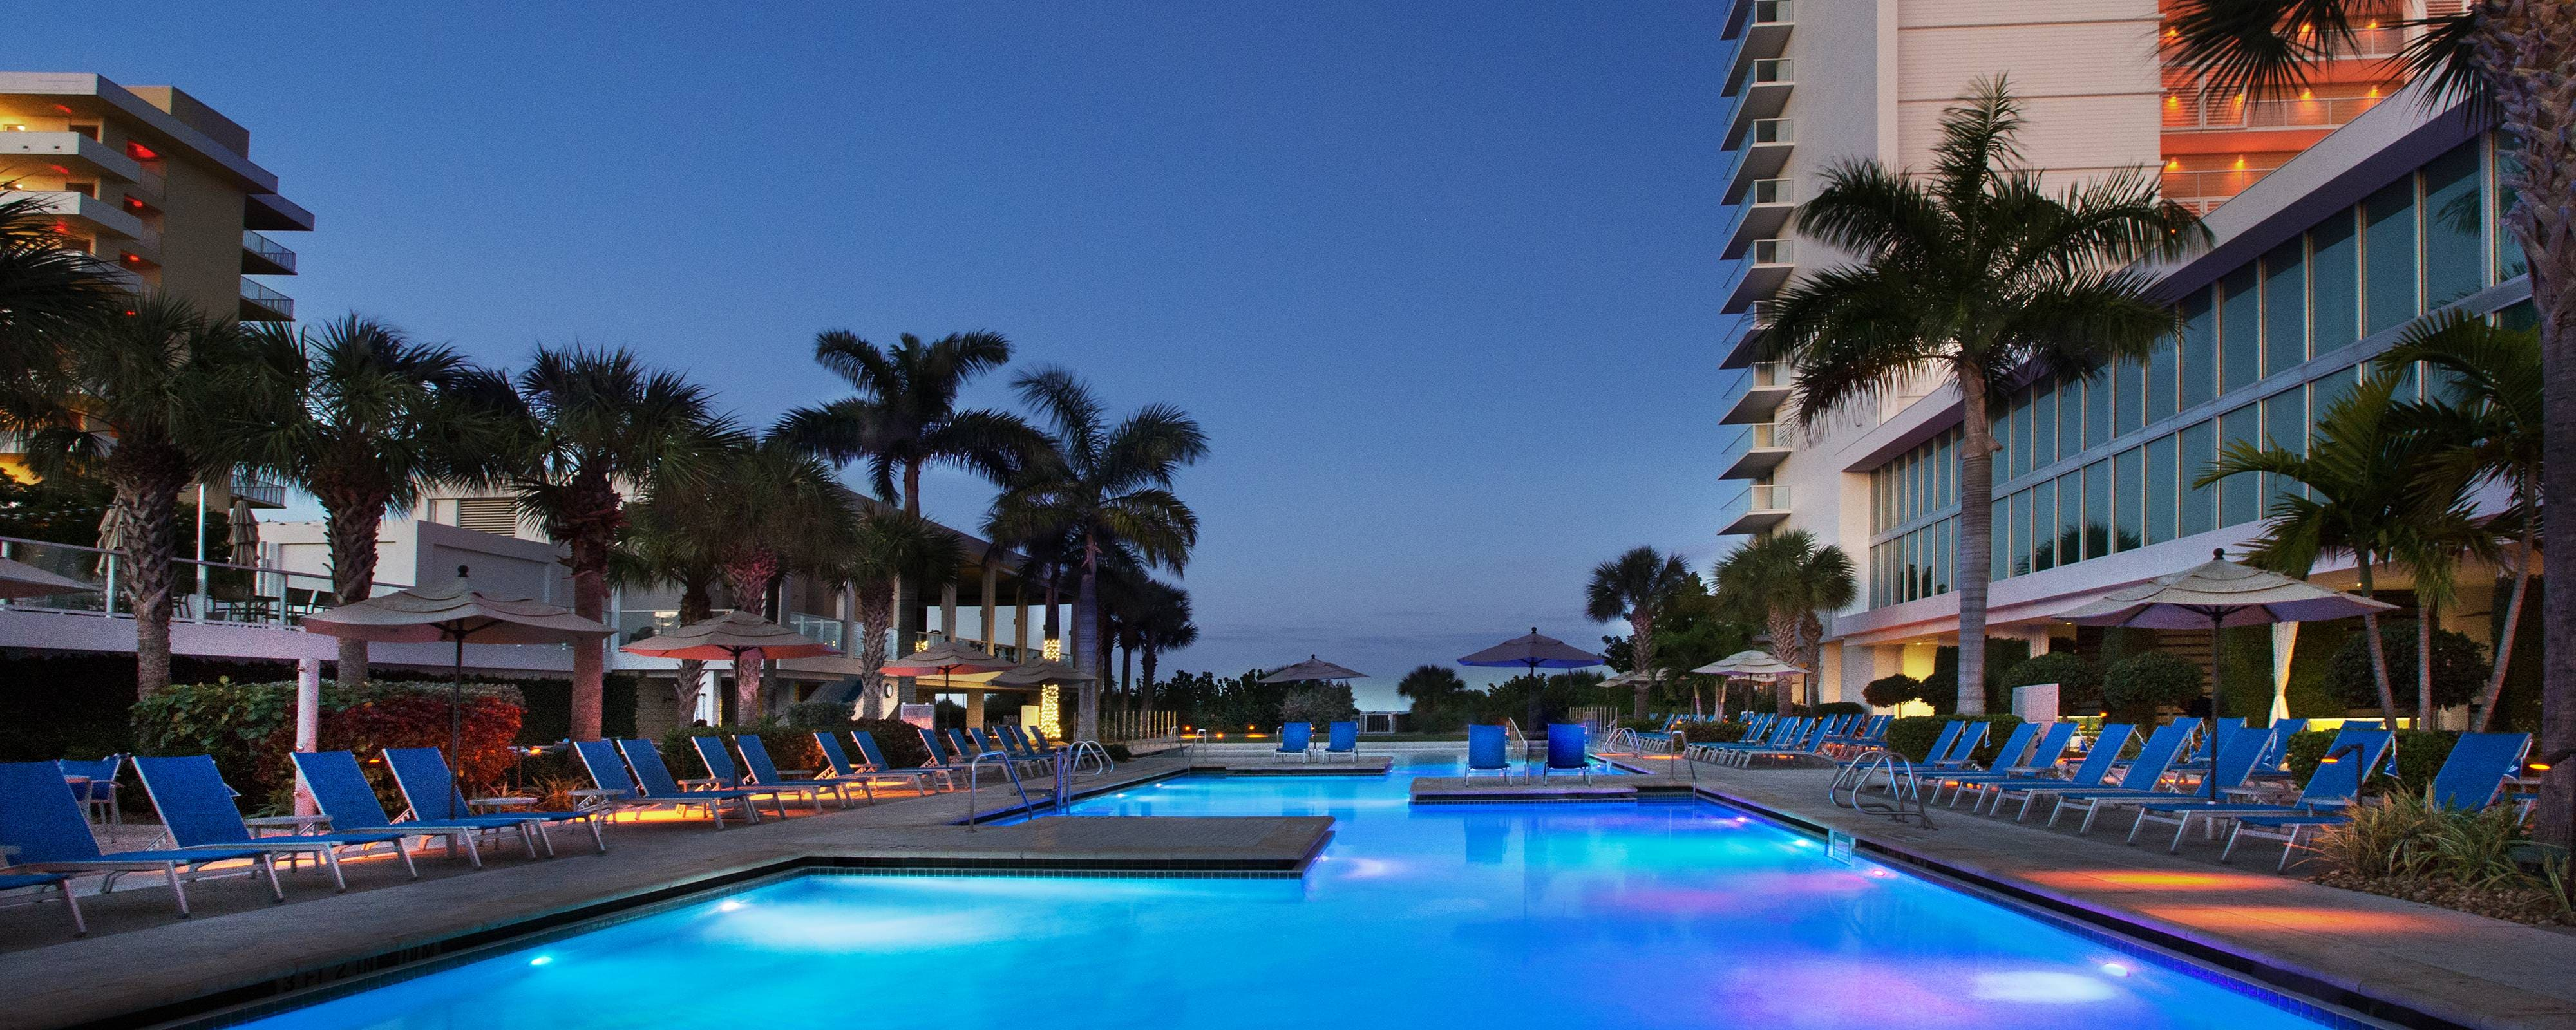 Vacation Rentals For Families In Marco Island Fl